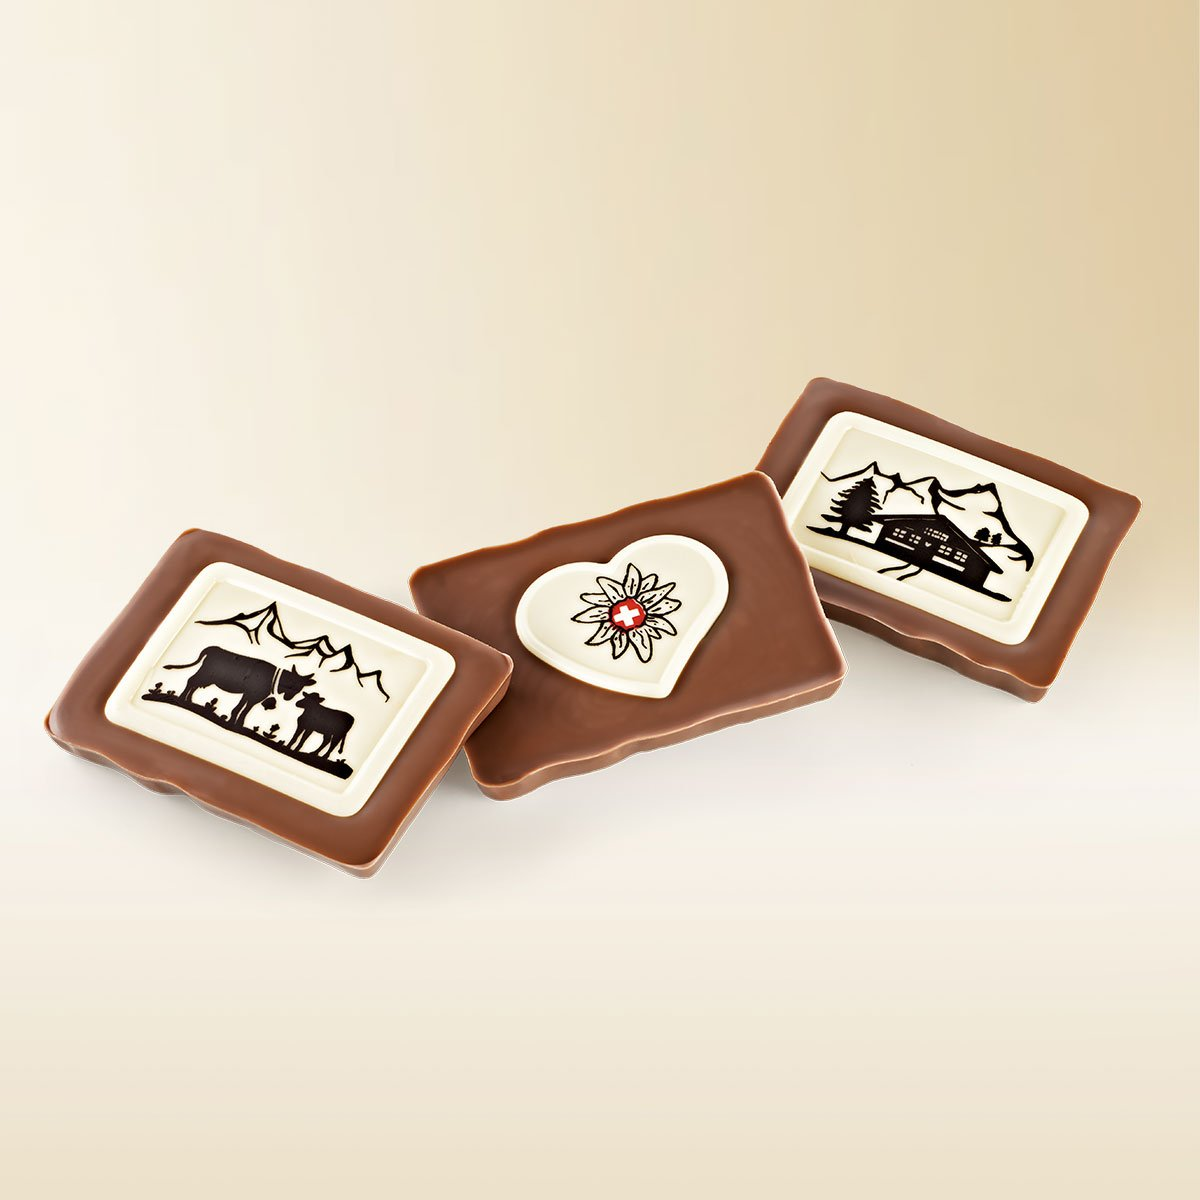 Le chocolat mini – Suisse Edition 200g